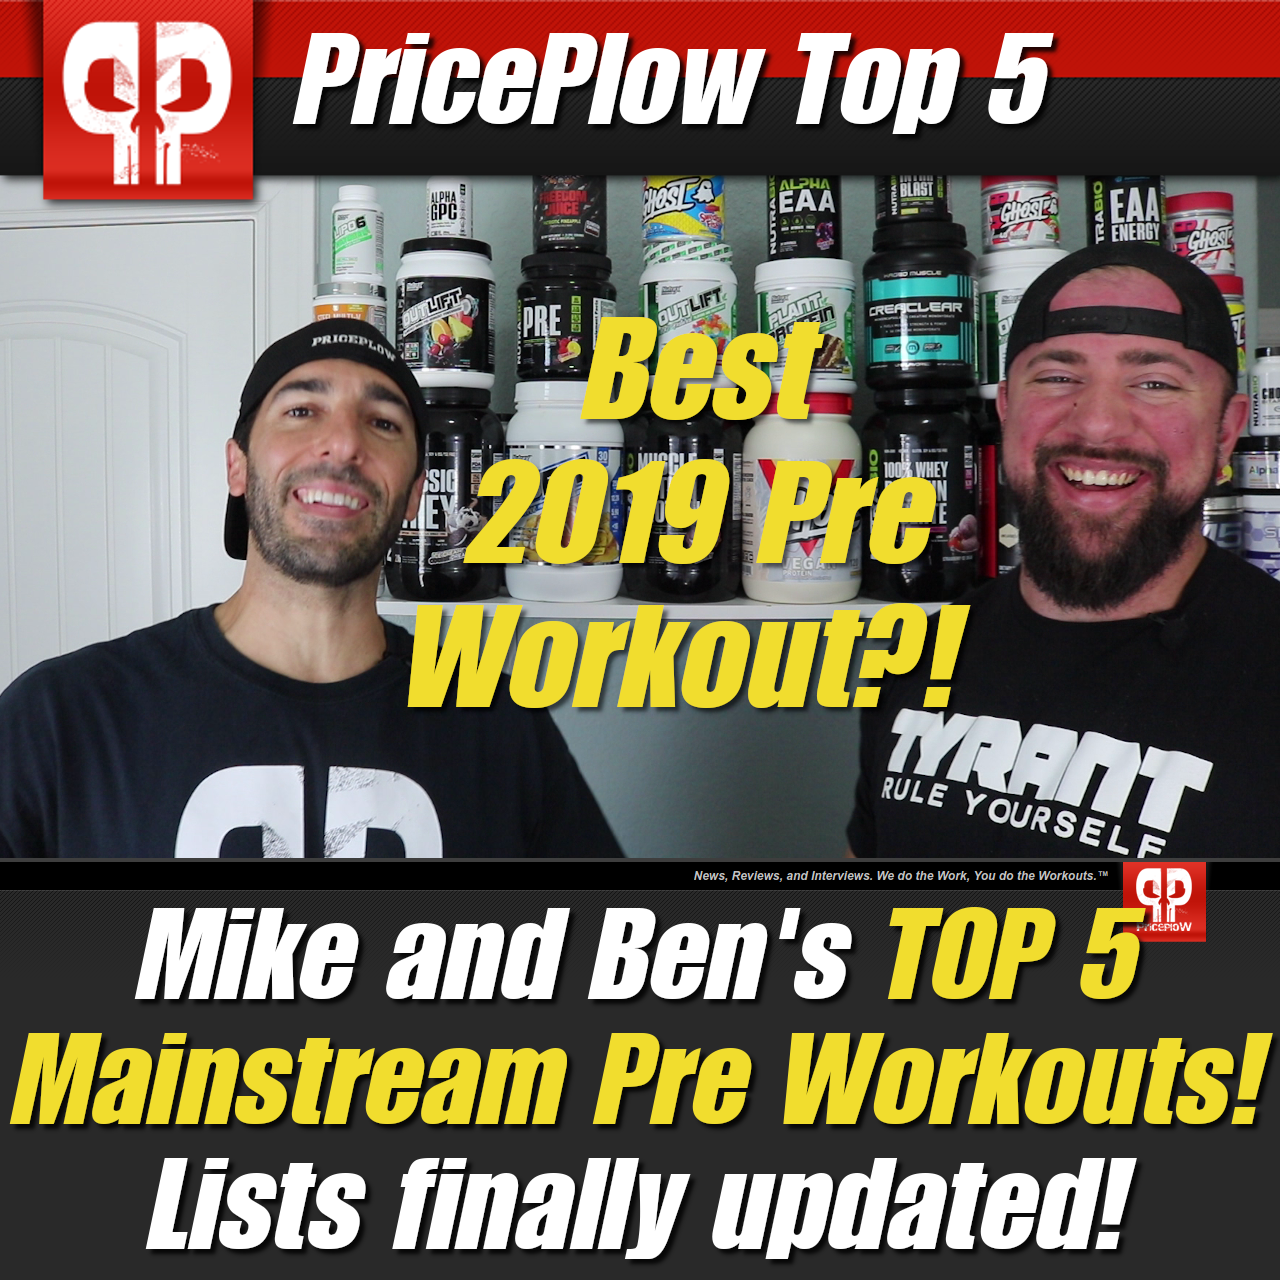 Best Pre Workout Supplement Guide for 2019: PricePlow's Top 10